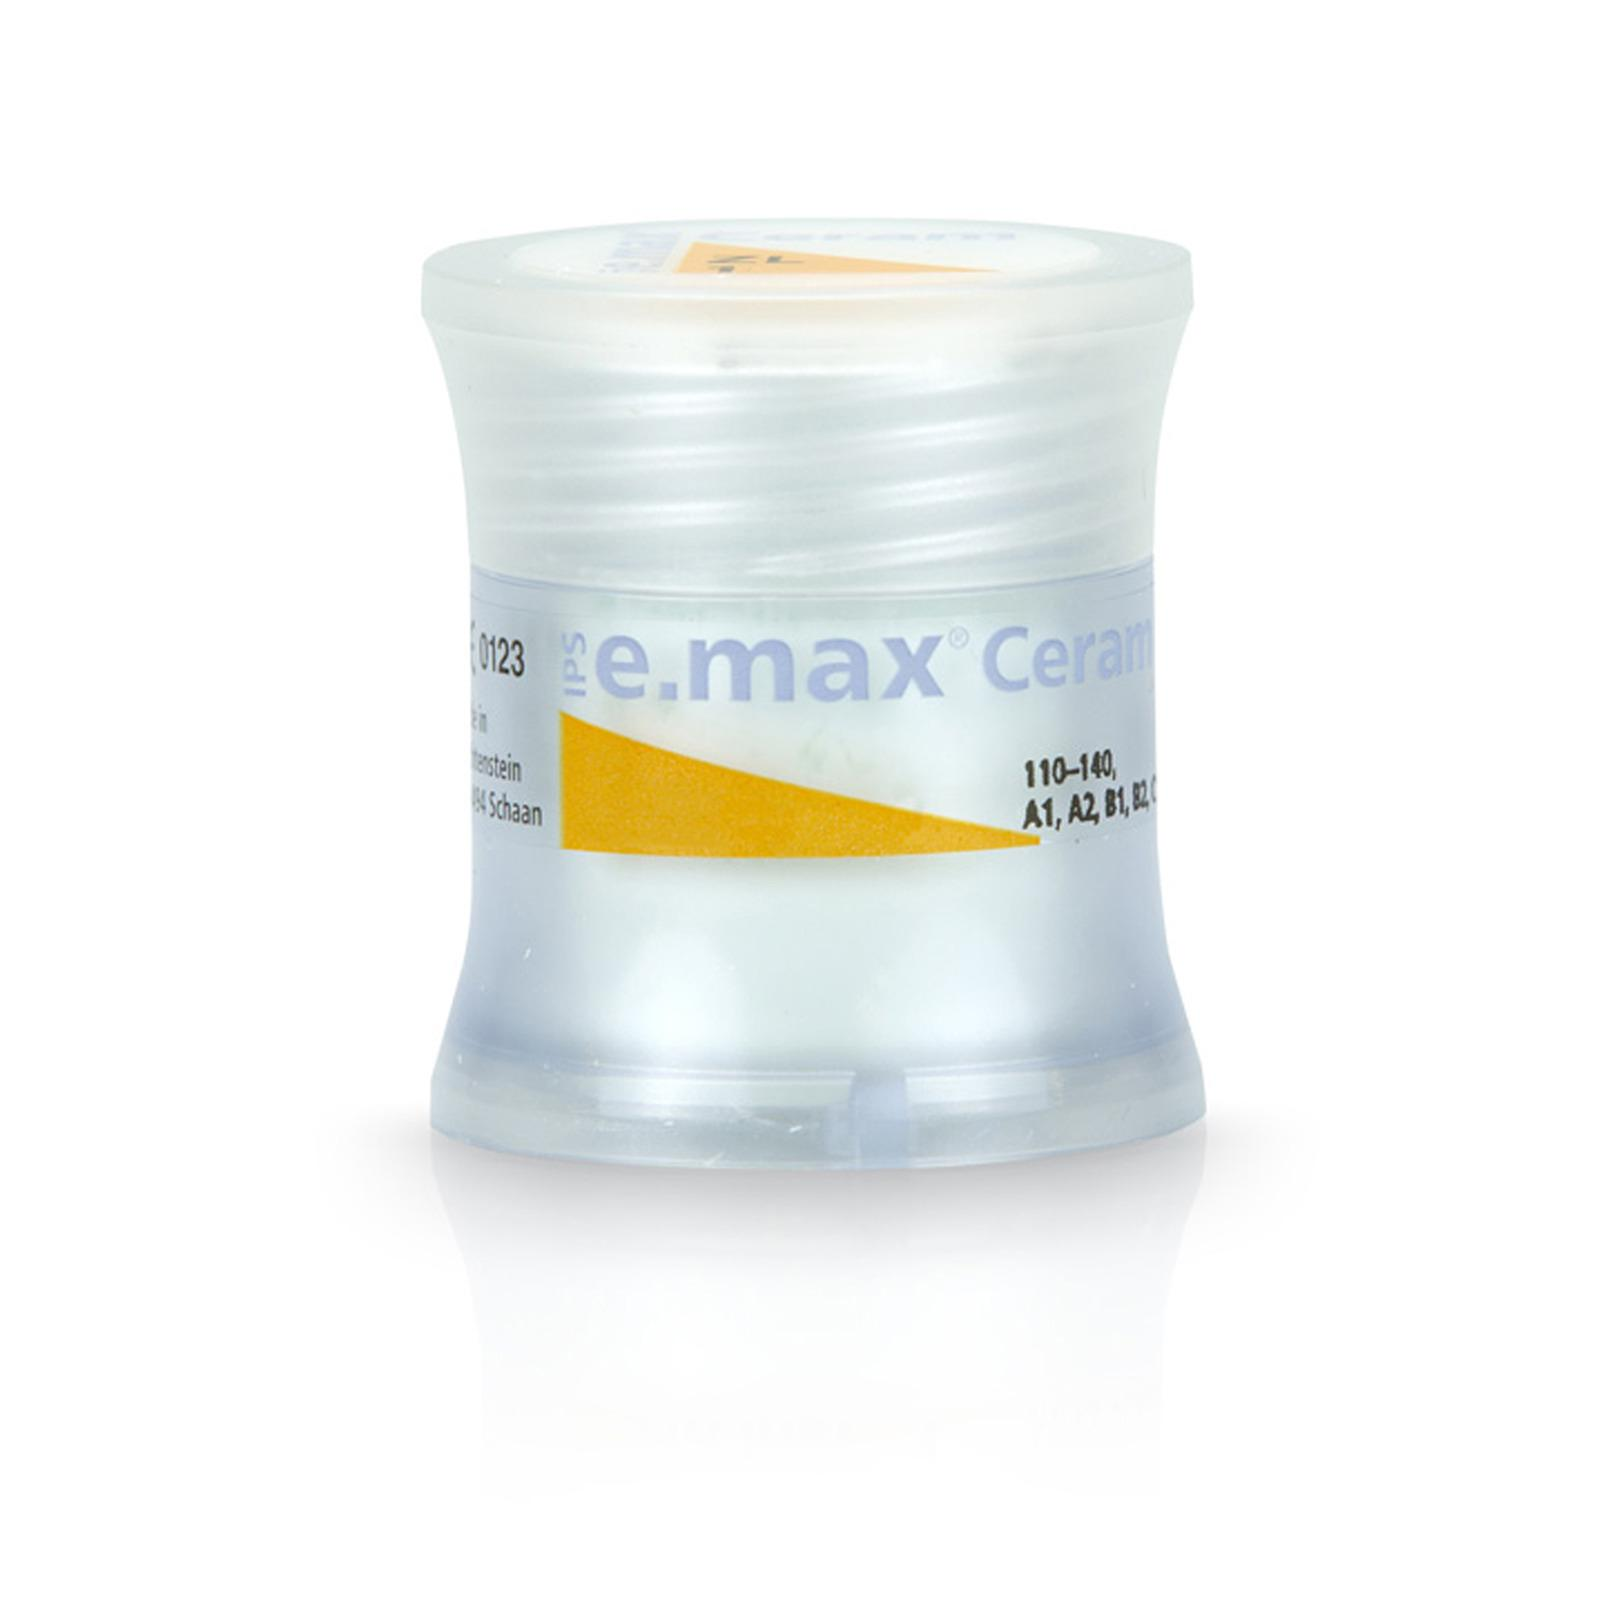 IPS e.max Ceram ZirLiner 5 g clear